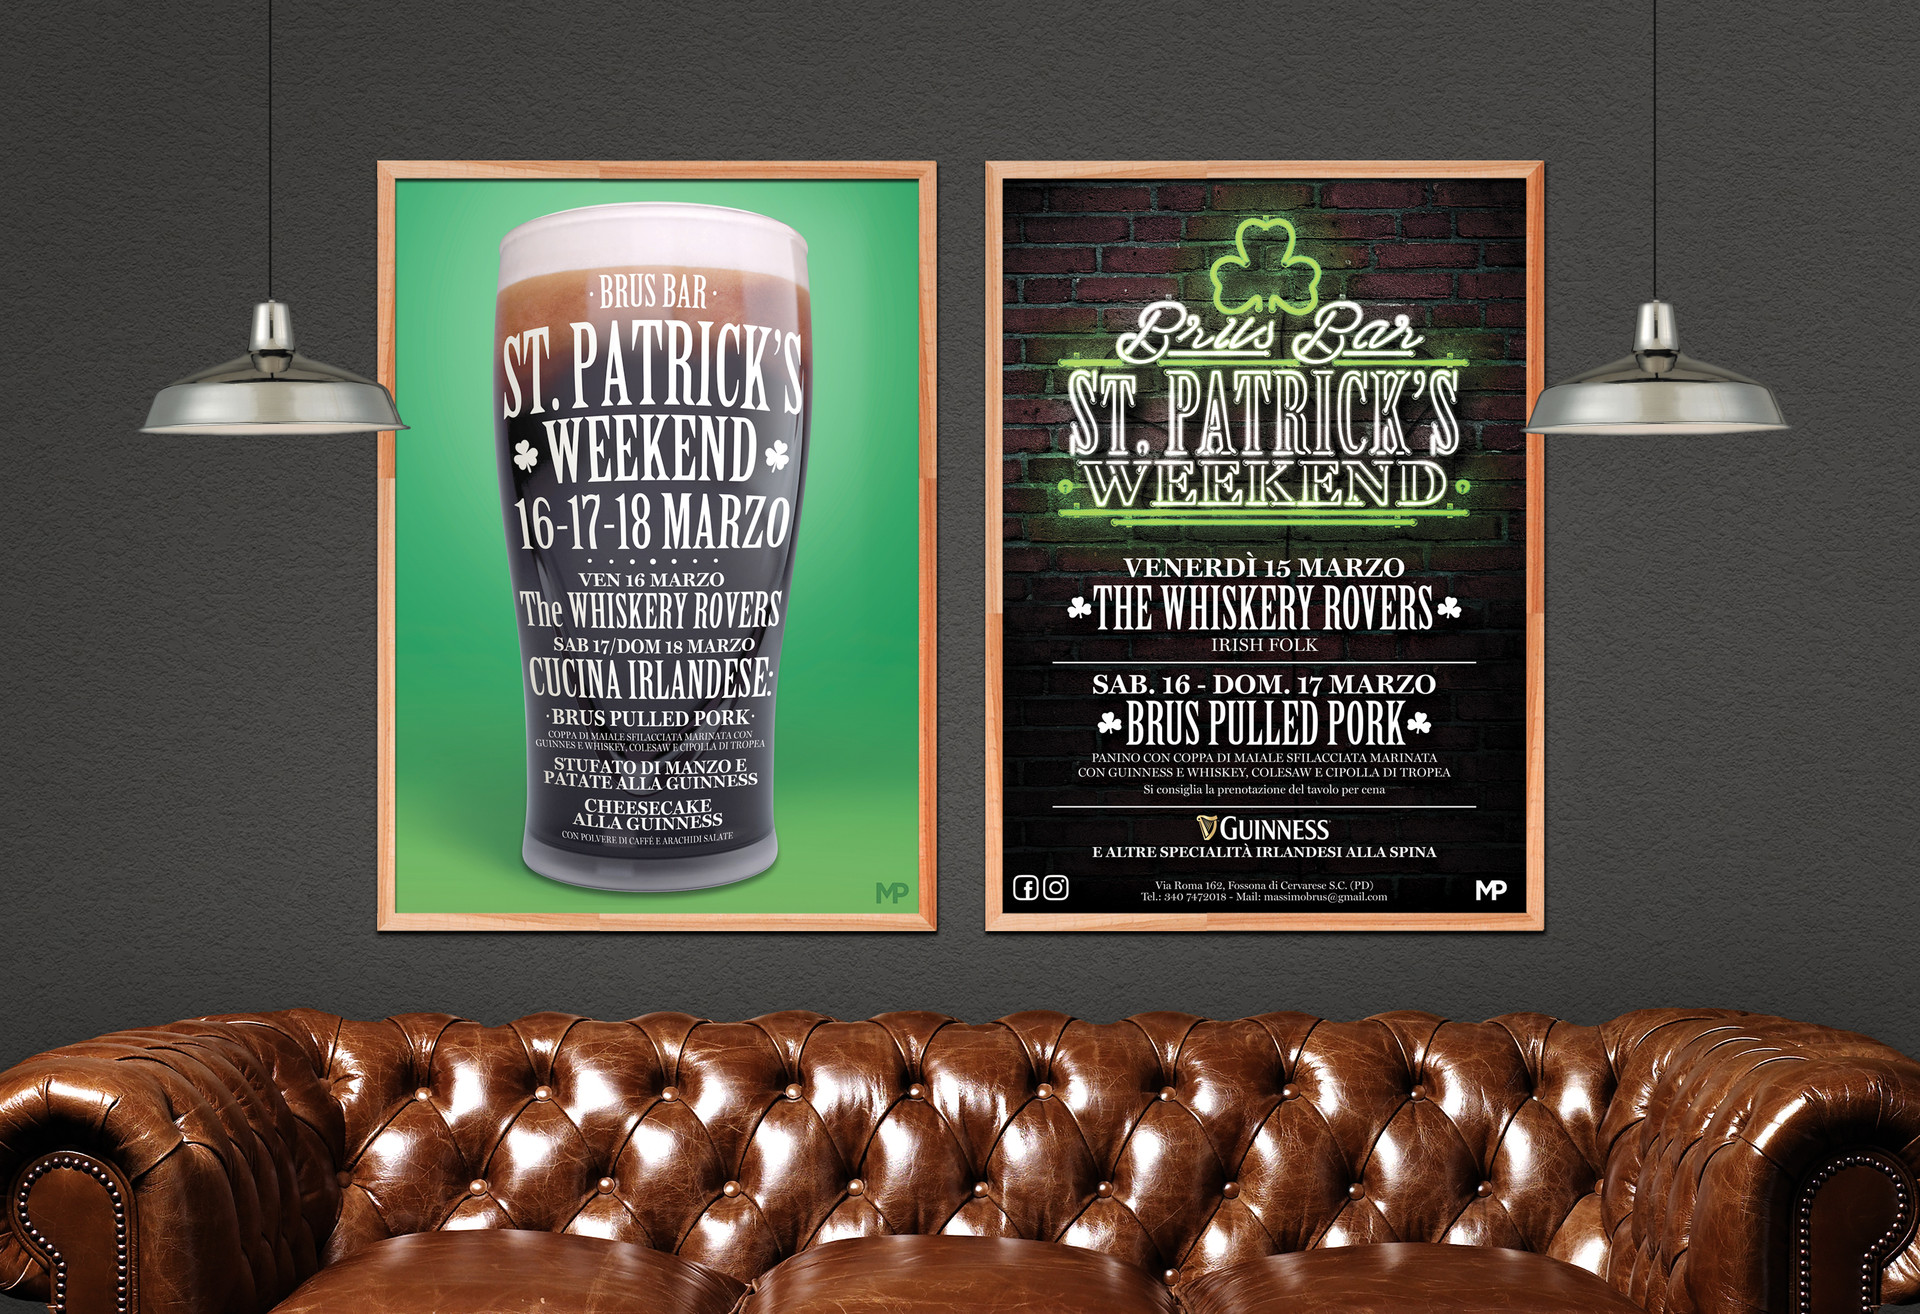 St Patrick's Weekend - MP Grafica